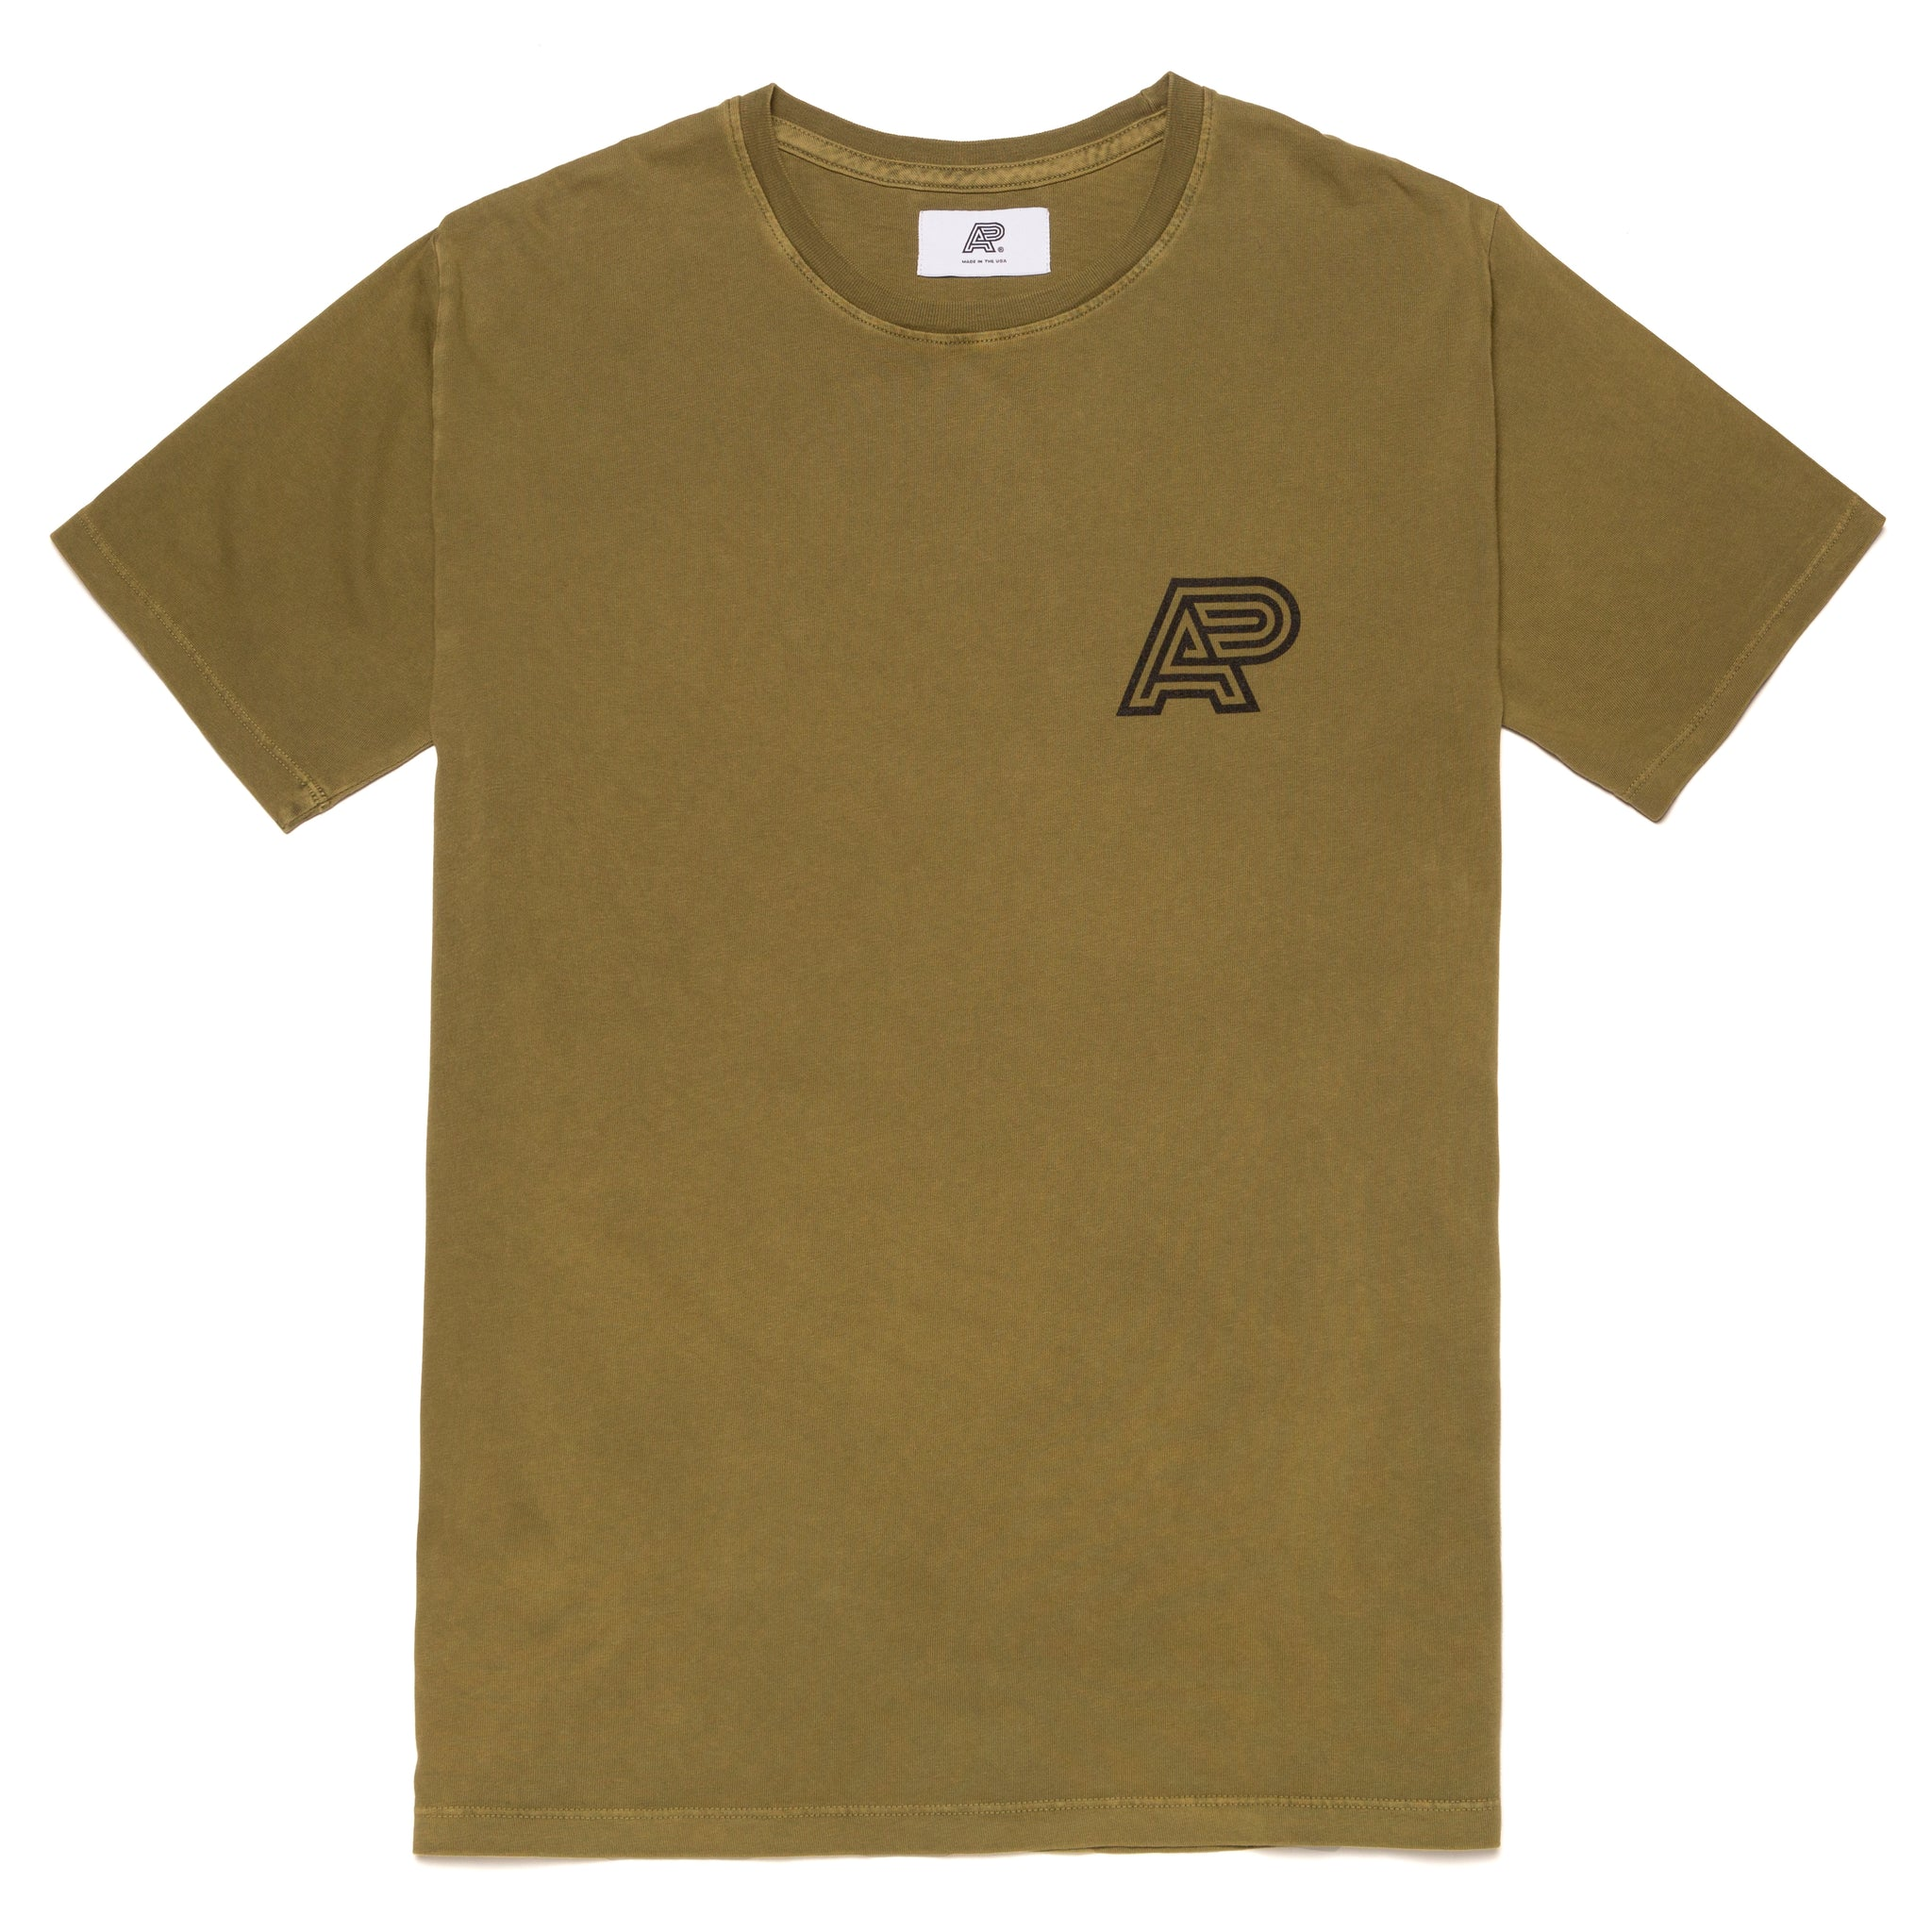 A&P OLIVE PIGMENT DYED TEE (FULFILLMENT)